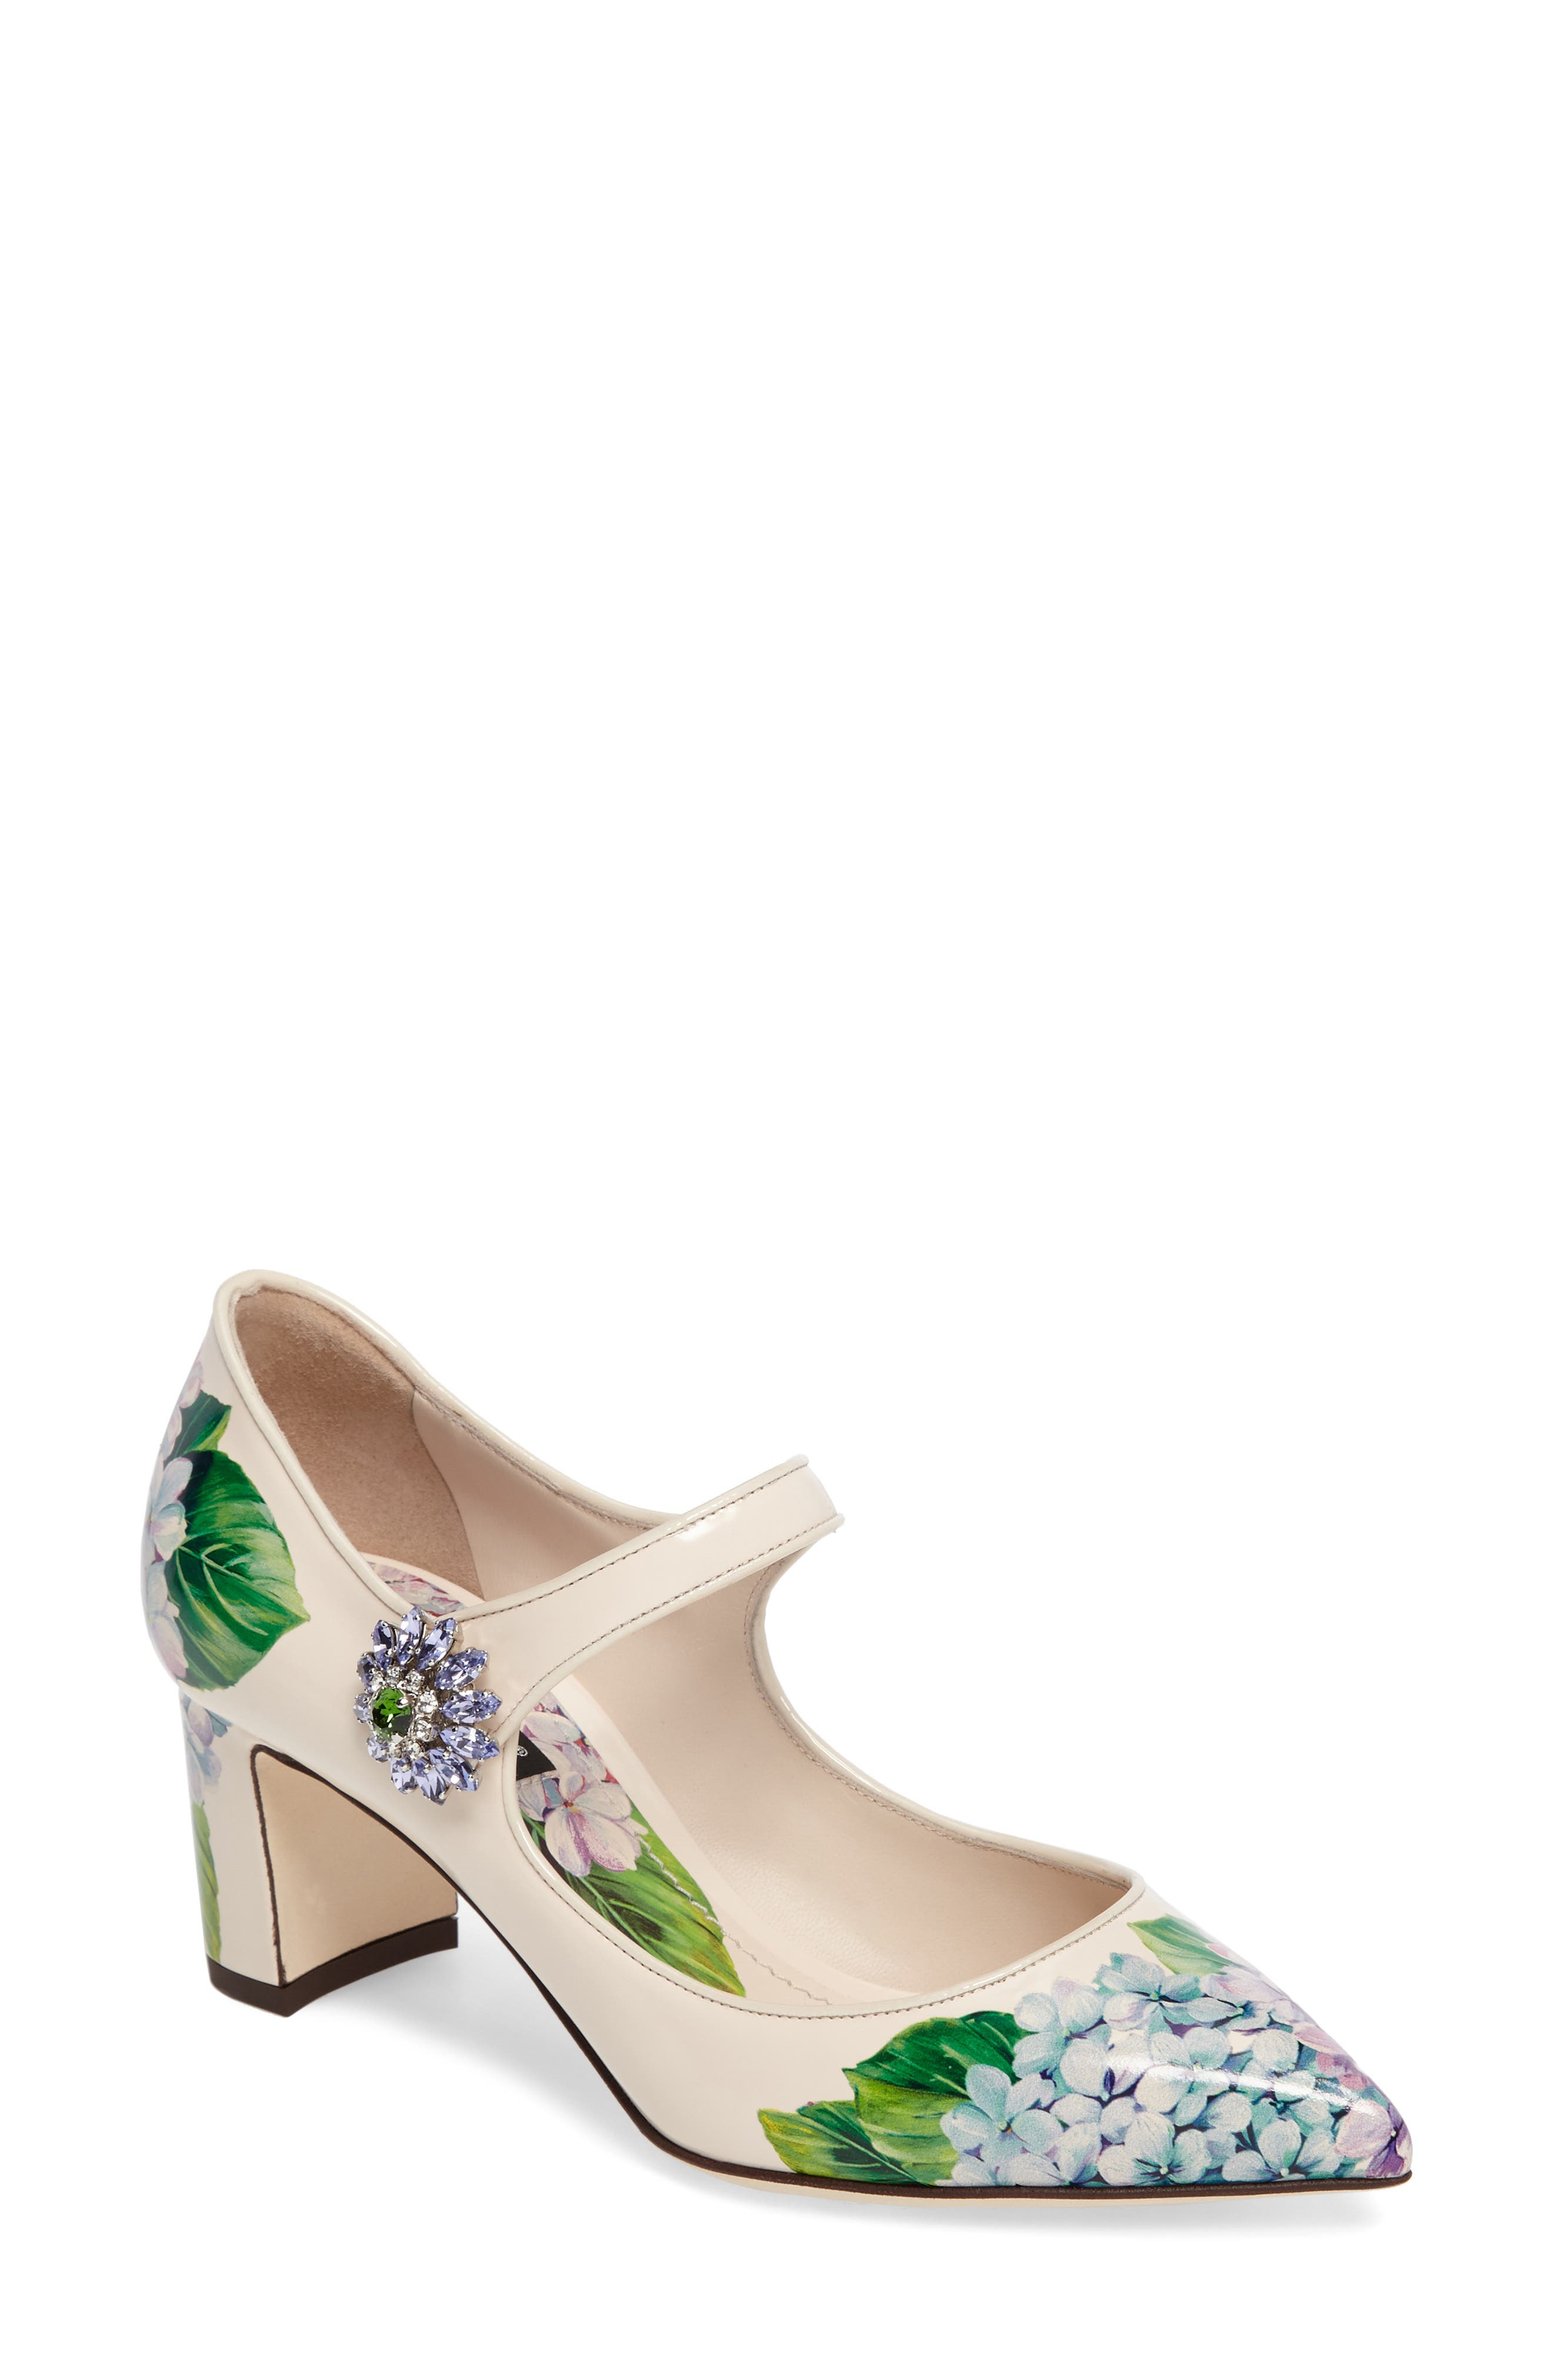 Hydrangea Mary Jane Pump,                         Main,                         color, White Floral